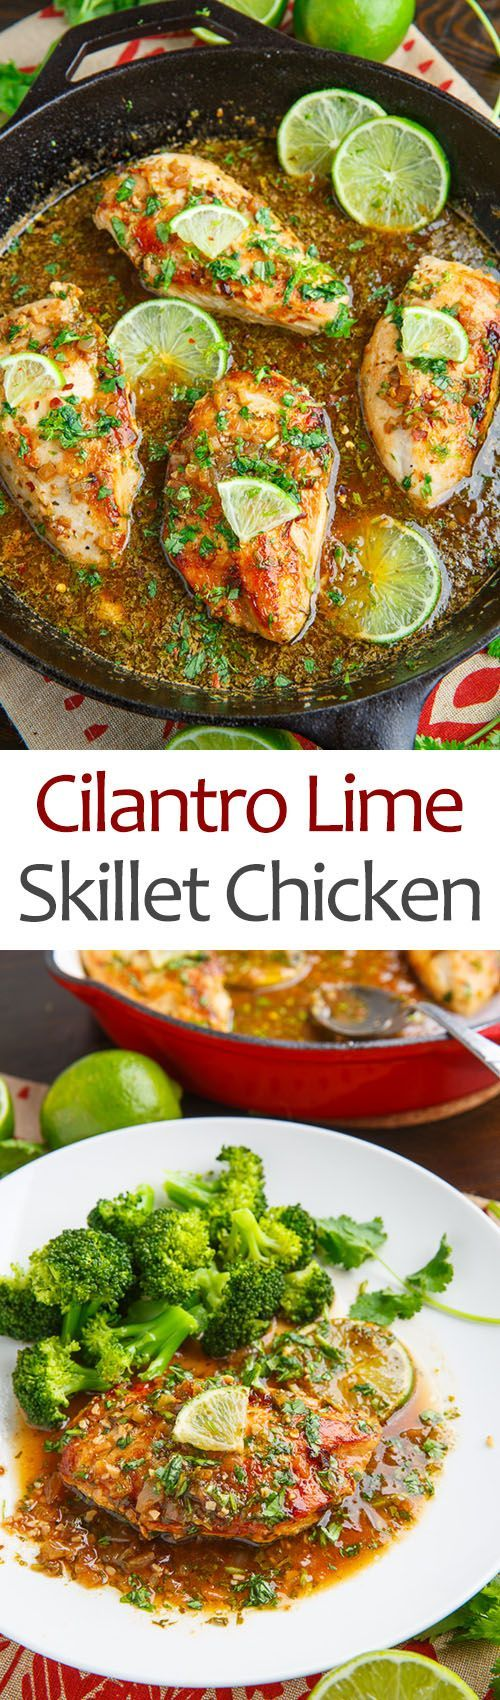 Cilantro Lime Skillet Chicken---- 1 lb thin chicken breast, 1 TB oil, 1 TB butte, S&P, 4 chopped garlic cloves, 1 pinch red pepper flakes (optional), 1/2 cup chicken broth, 1 lime juice and zest, 2 TB chopped cilantro